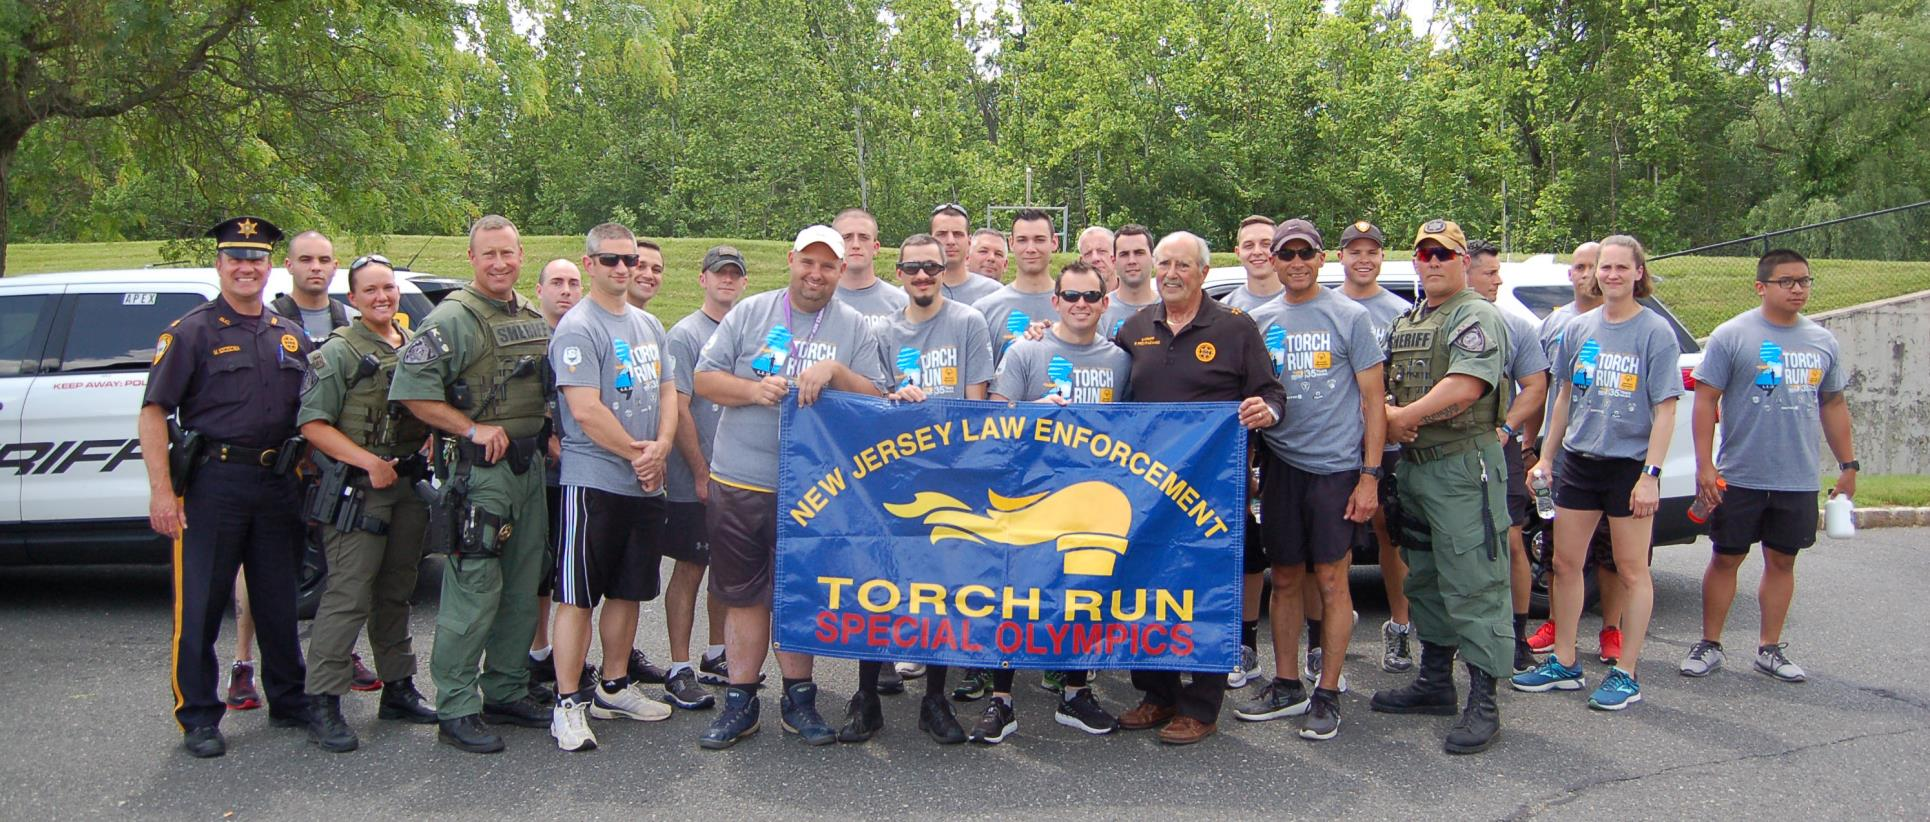 Sheriff's Officers, 2018 Torch Run for Special Olympics